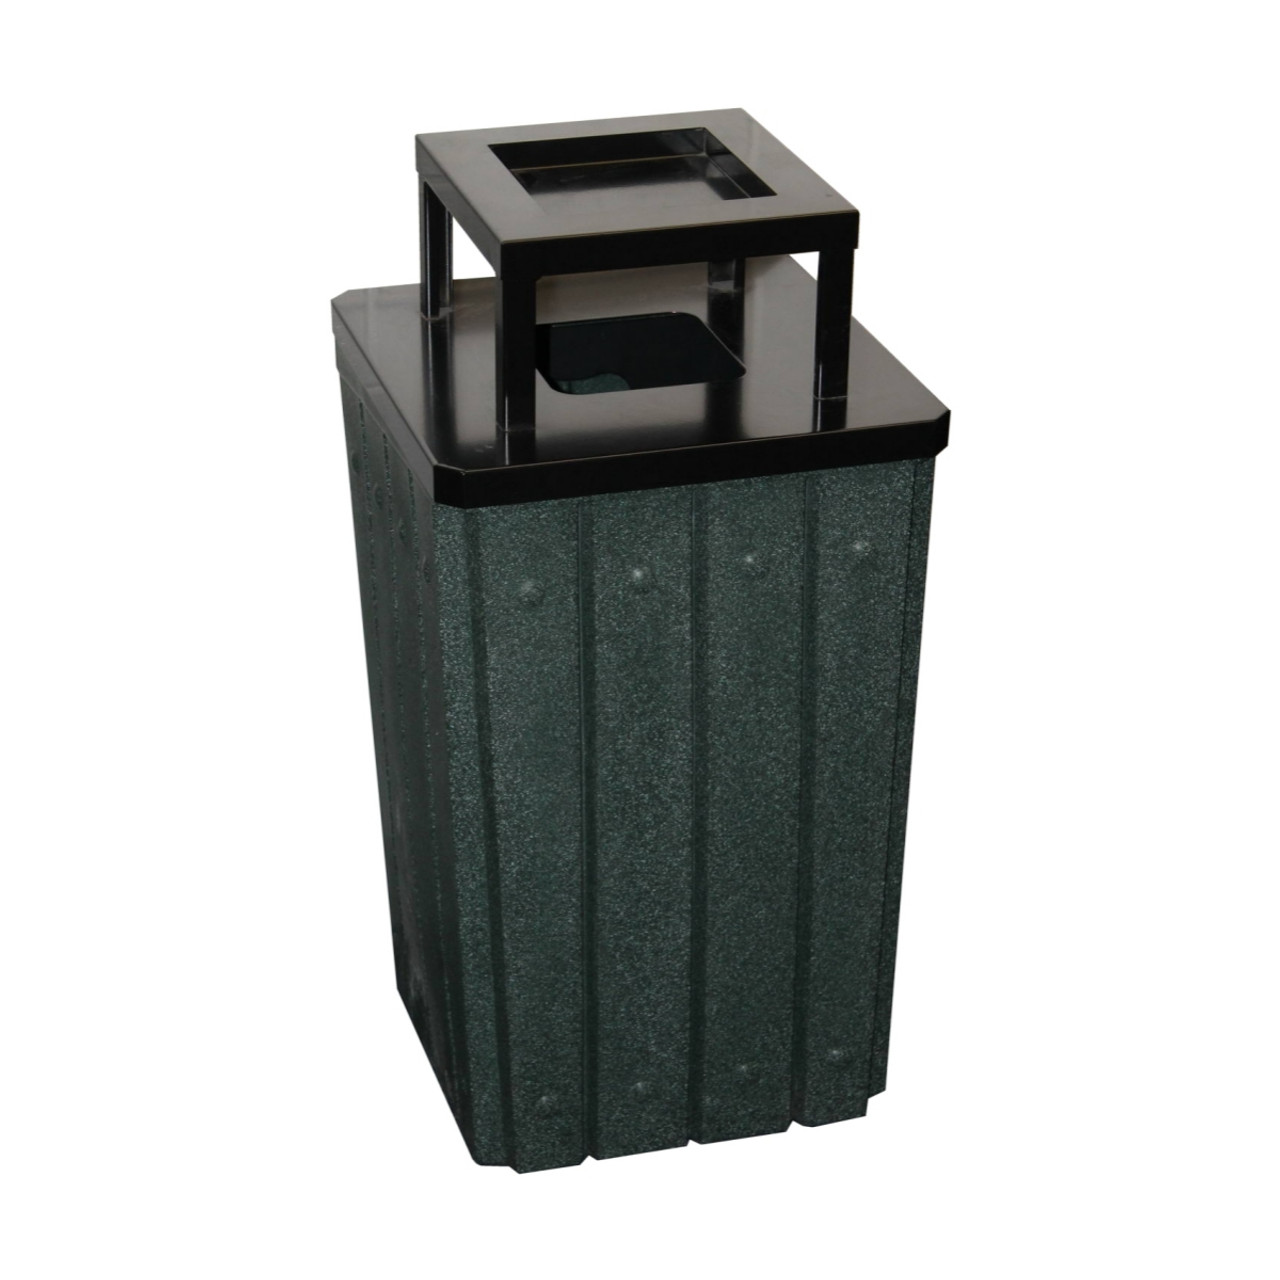 32 Gallon Heavy Duty Green Granite Ash Trash Can with Liner S8295S-00-165